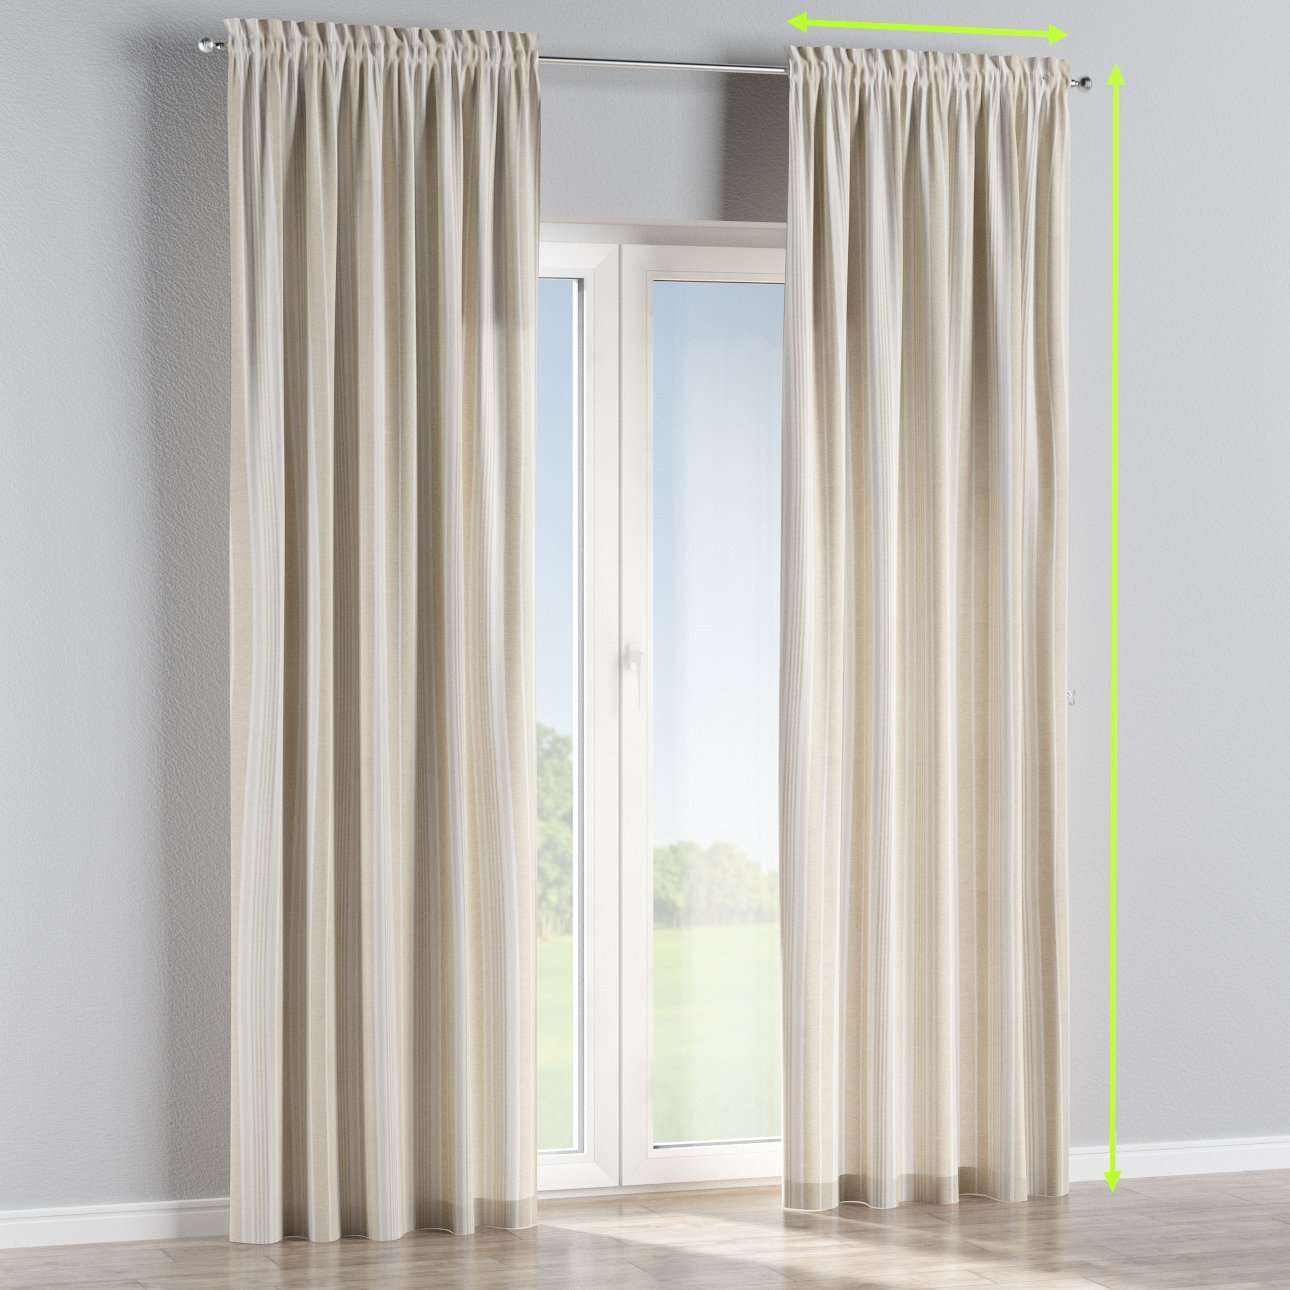 Slot and frill curtains in collection Rustica, fabric: 138-24